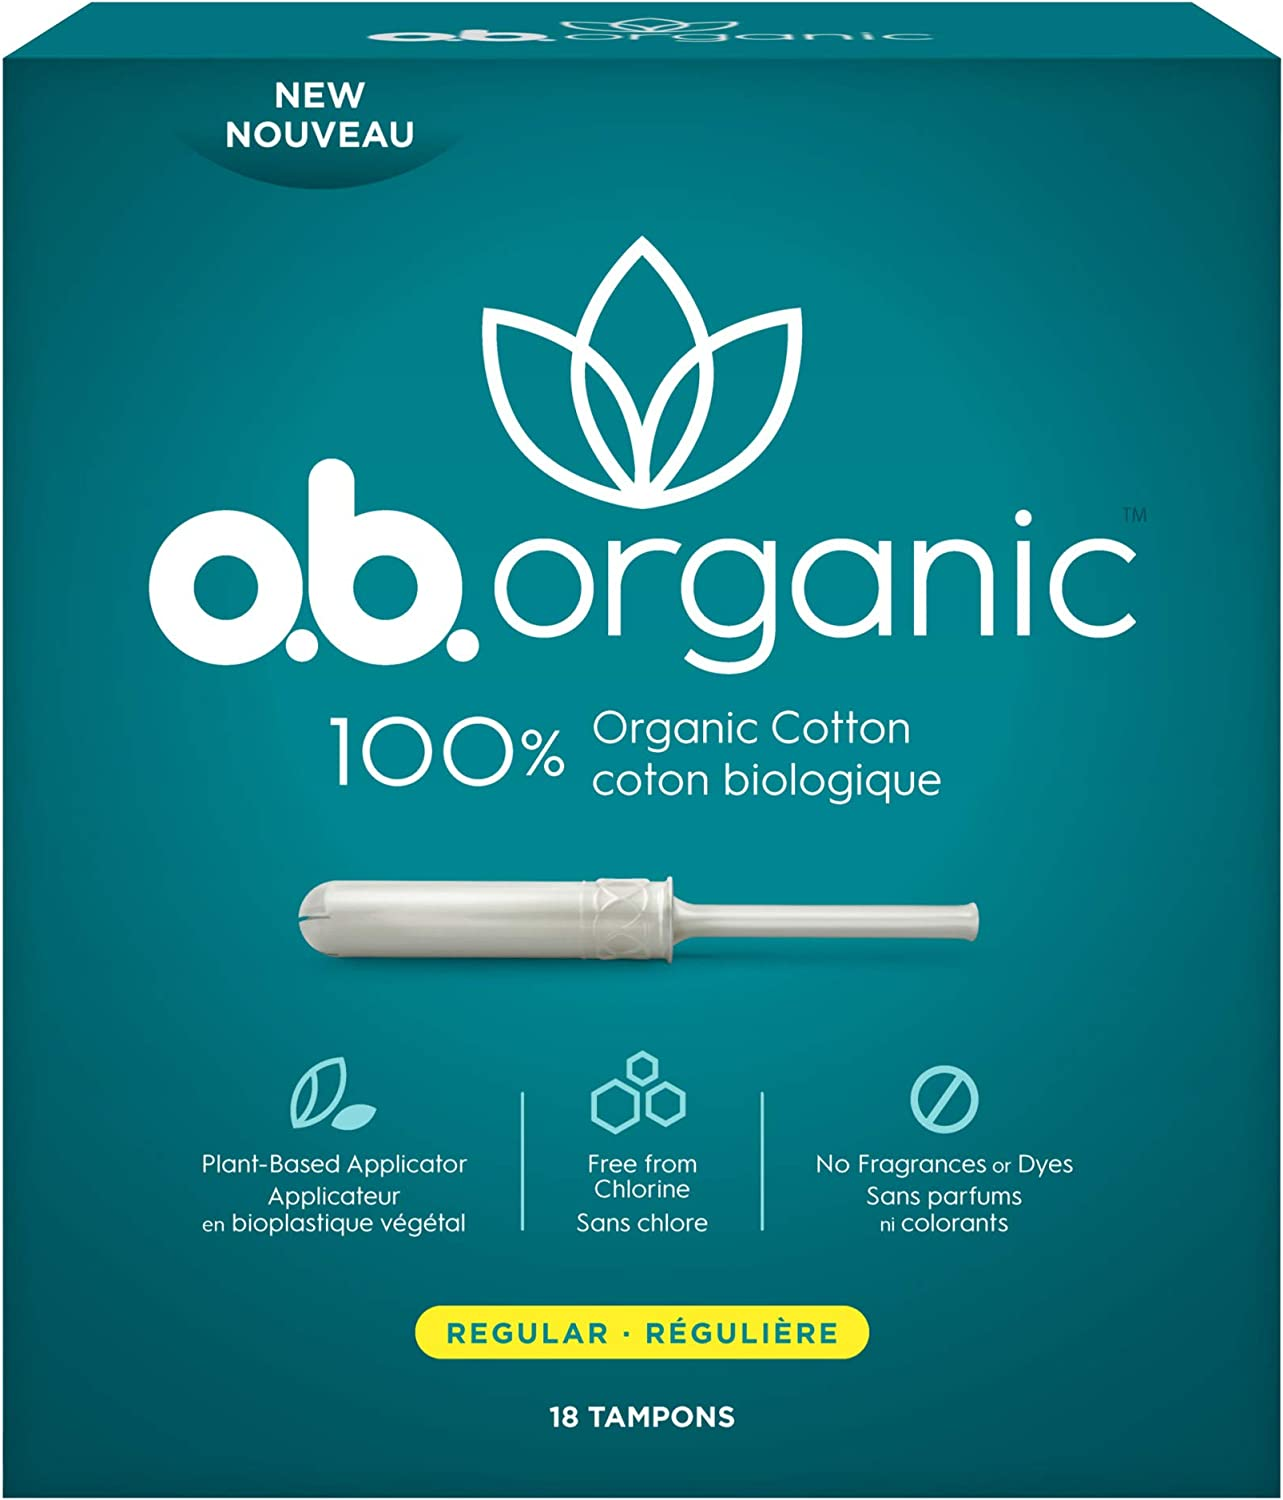 o.b. Organic Tampons with New Plant-Based Applicator